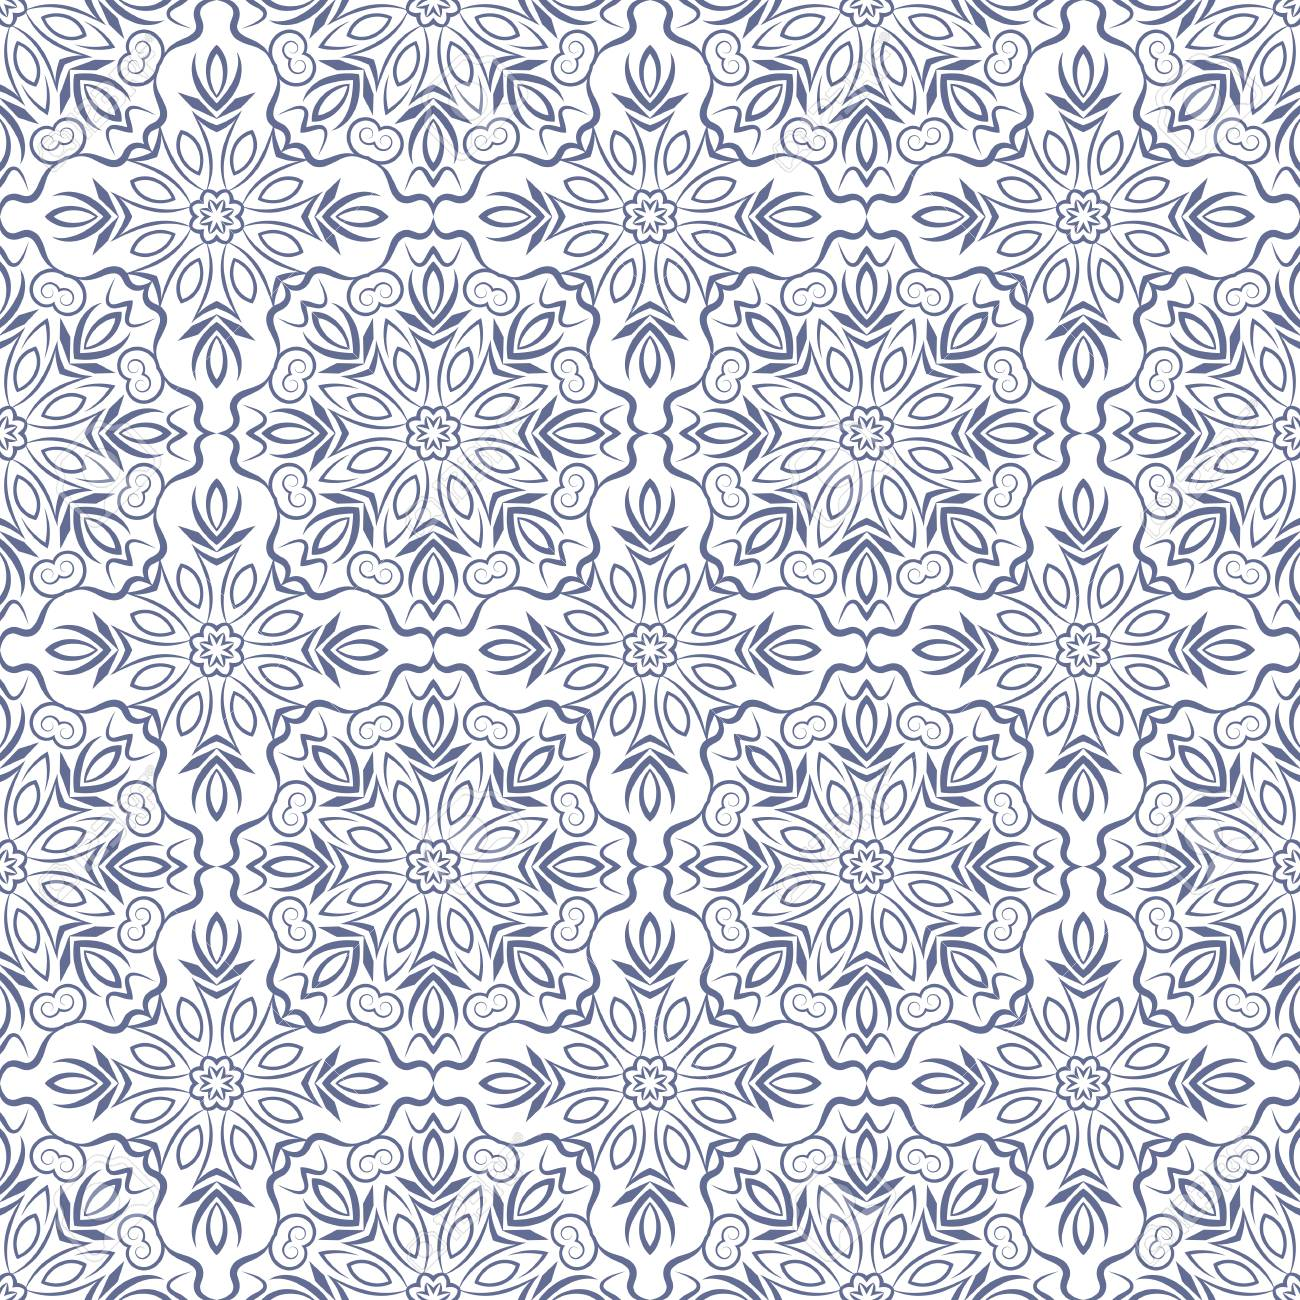 Indian pattern  Arabic, islamic, japanese motifs  Mandala seamless